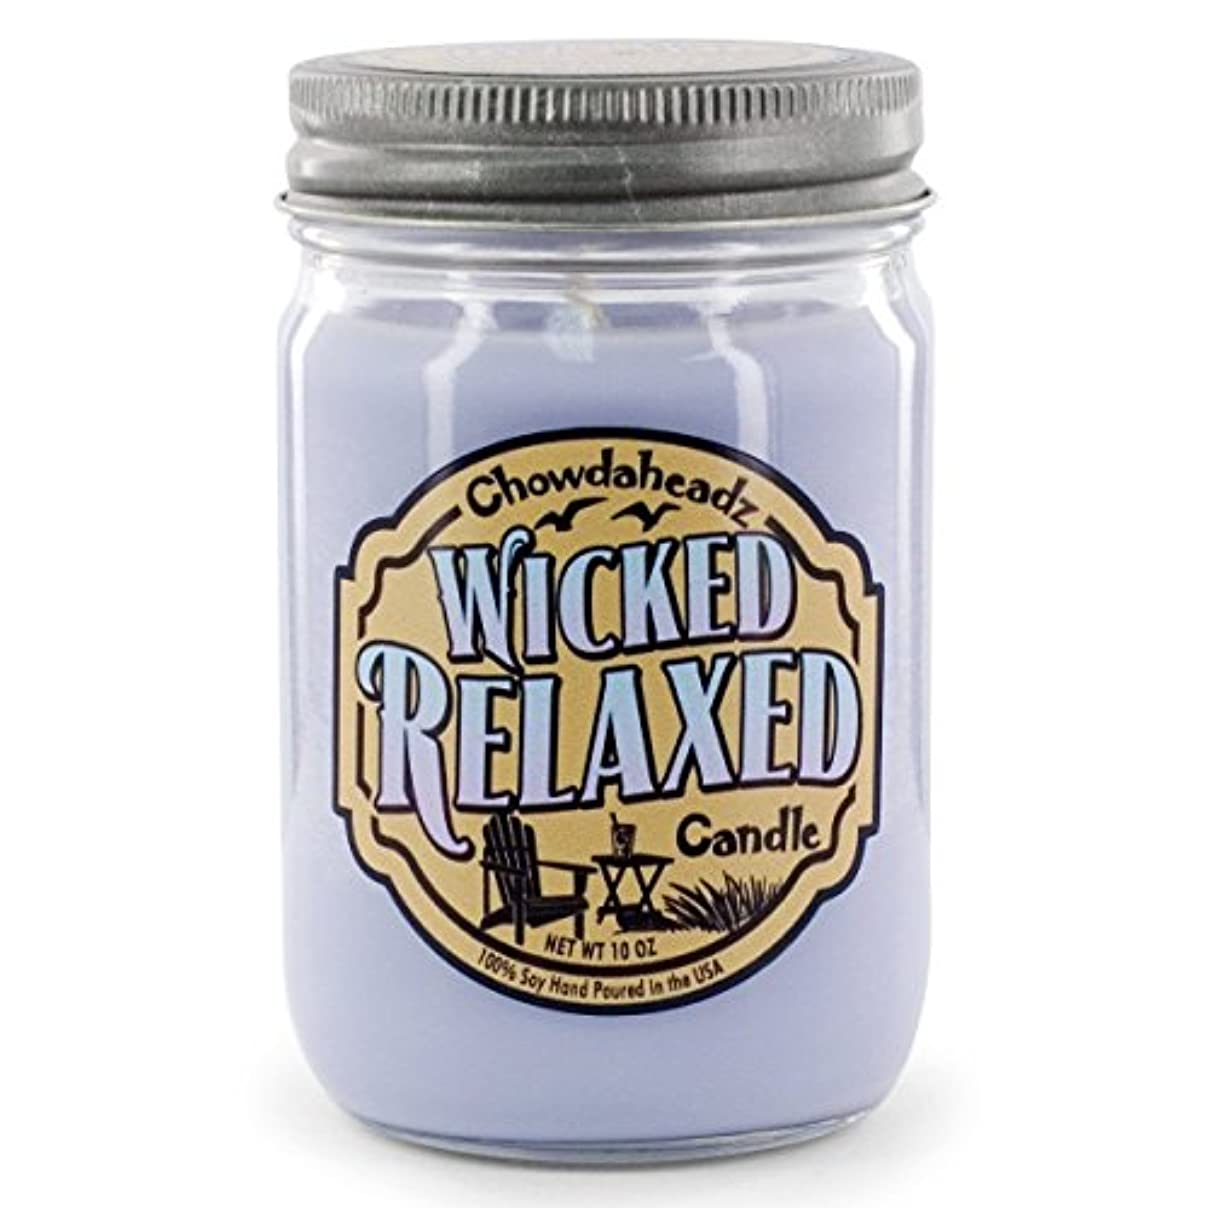 Wicked Relaxed Candle 100 %大豆、すべての自然、Made in the USA by Chowdaheadz